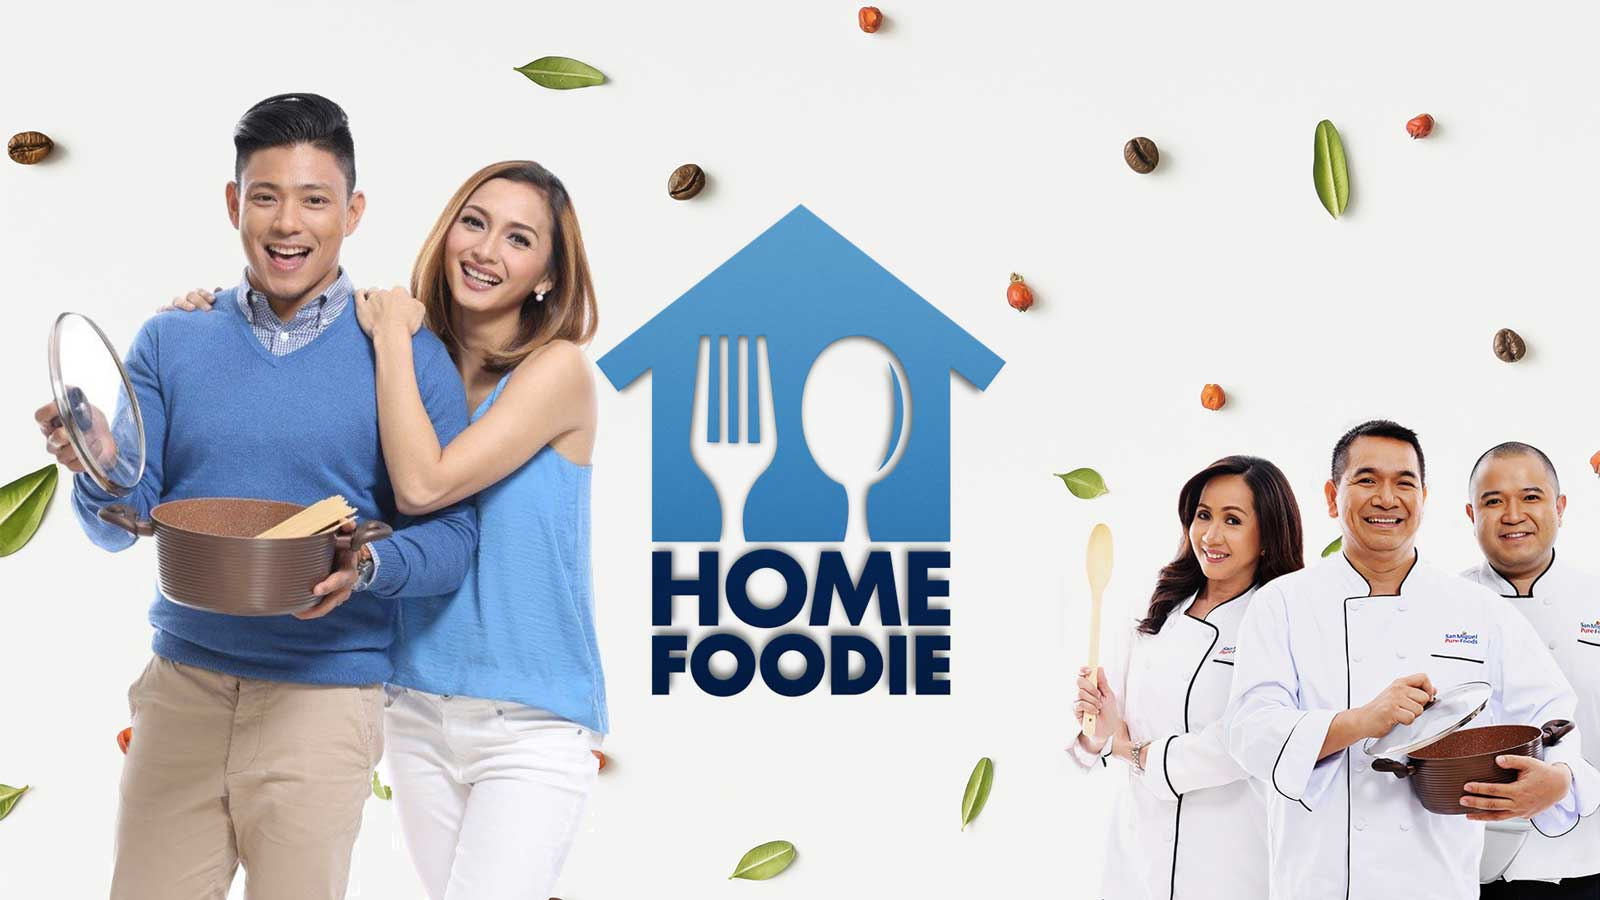 Home Foodie is back for season 5